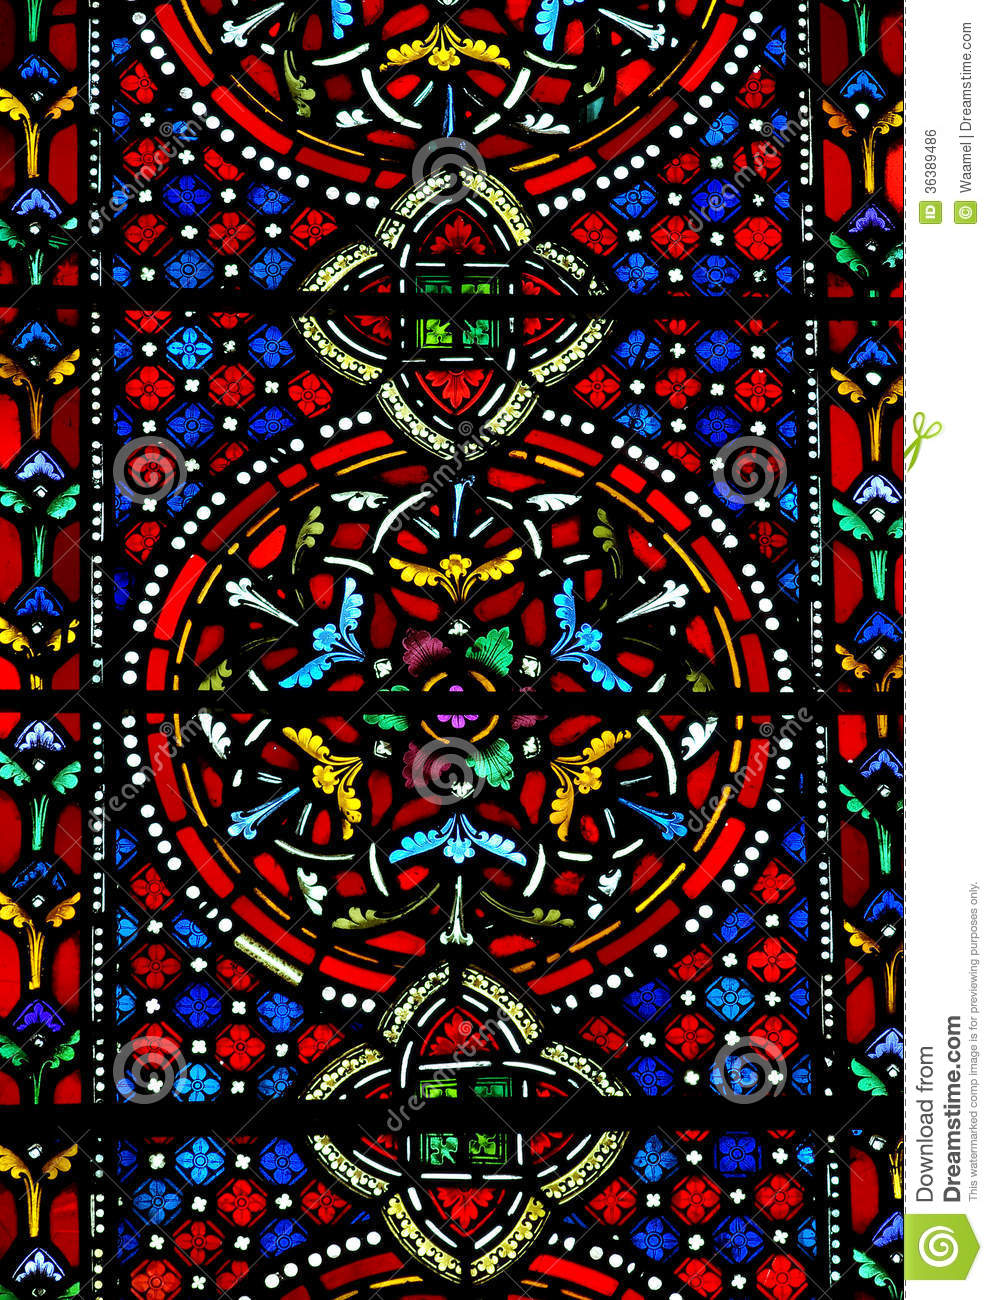 Stained Glass Window Patterns : Stained glass pattern stock photo image of